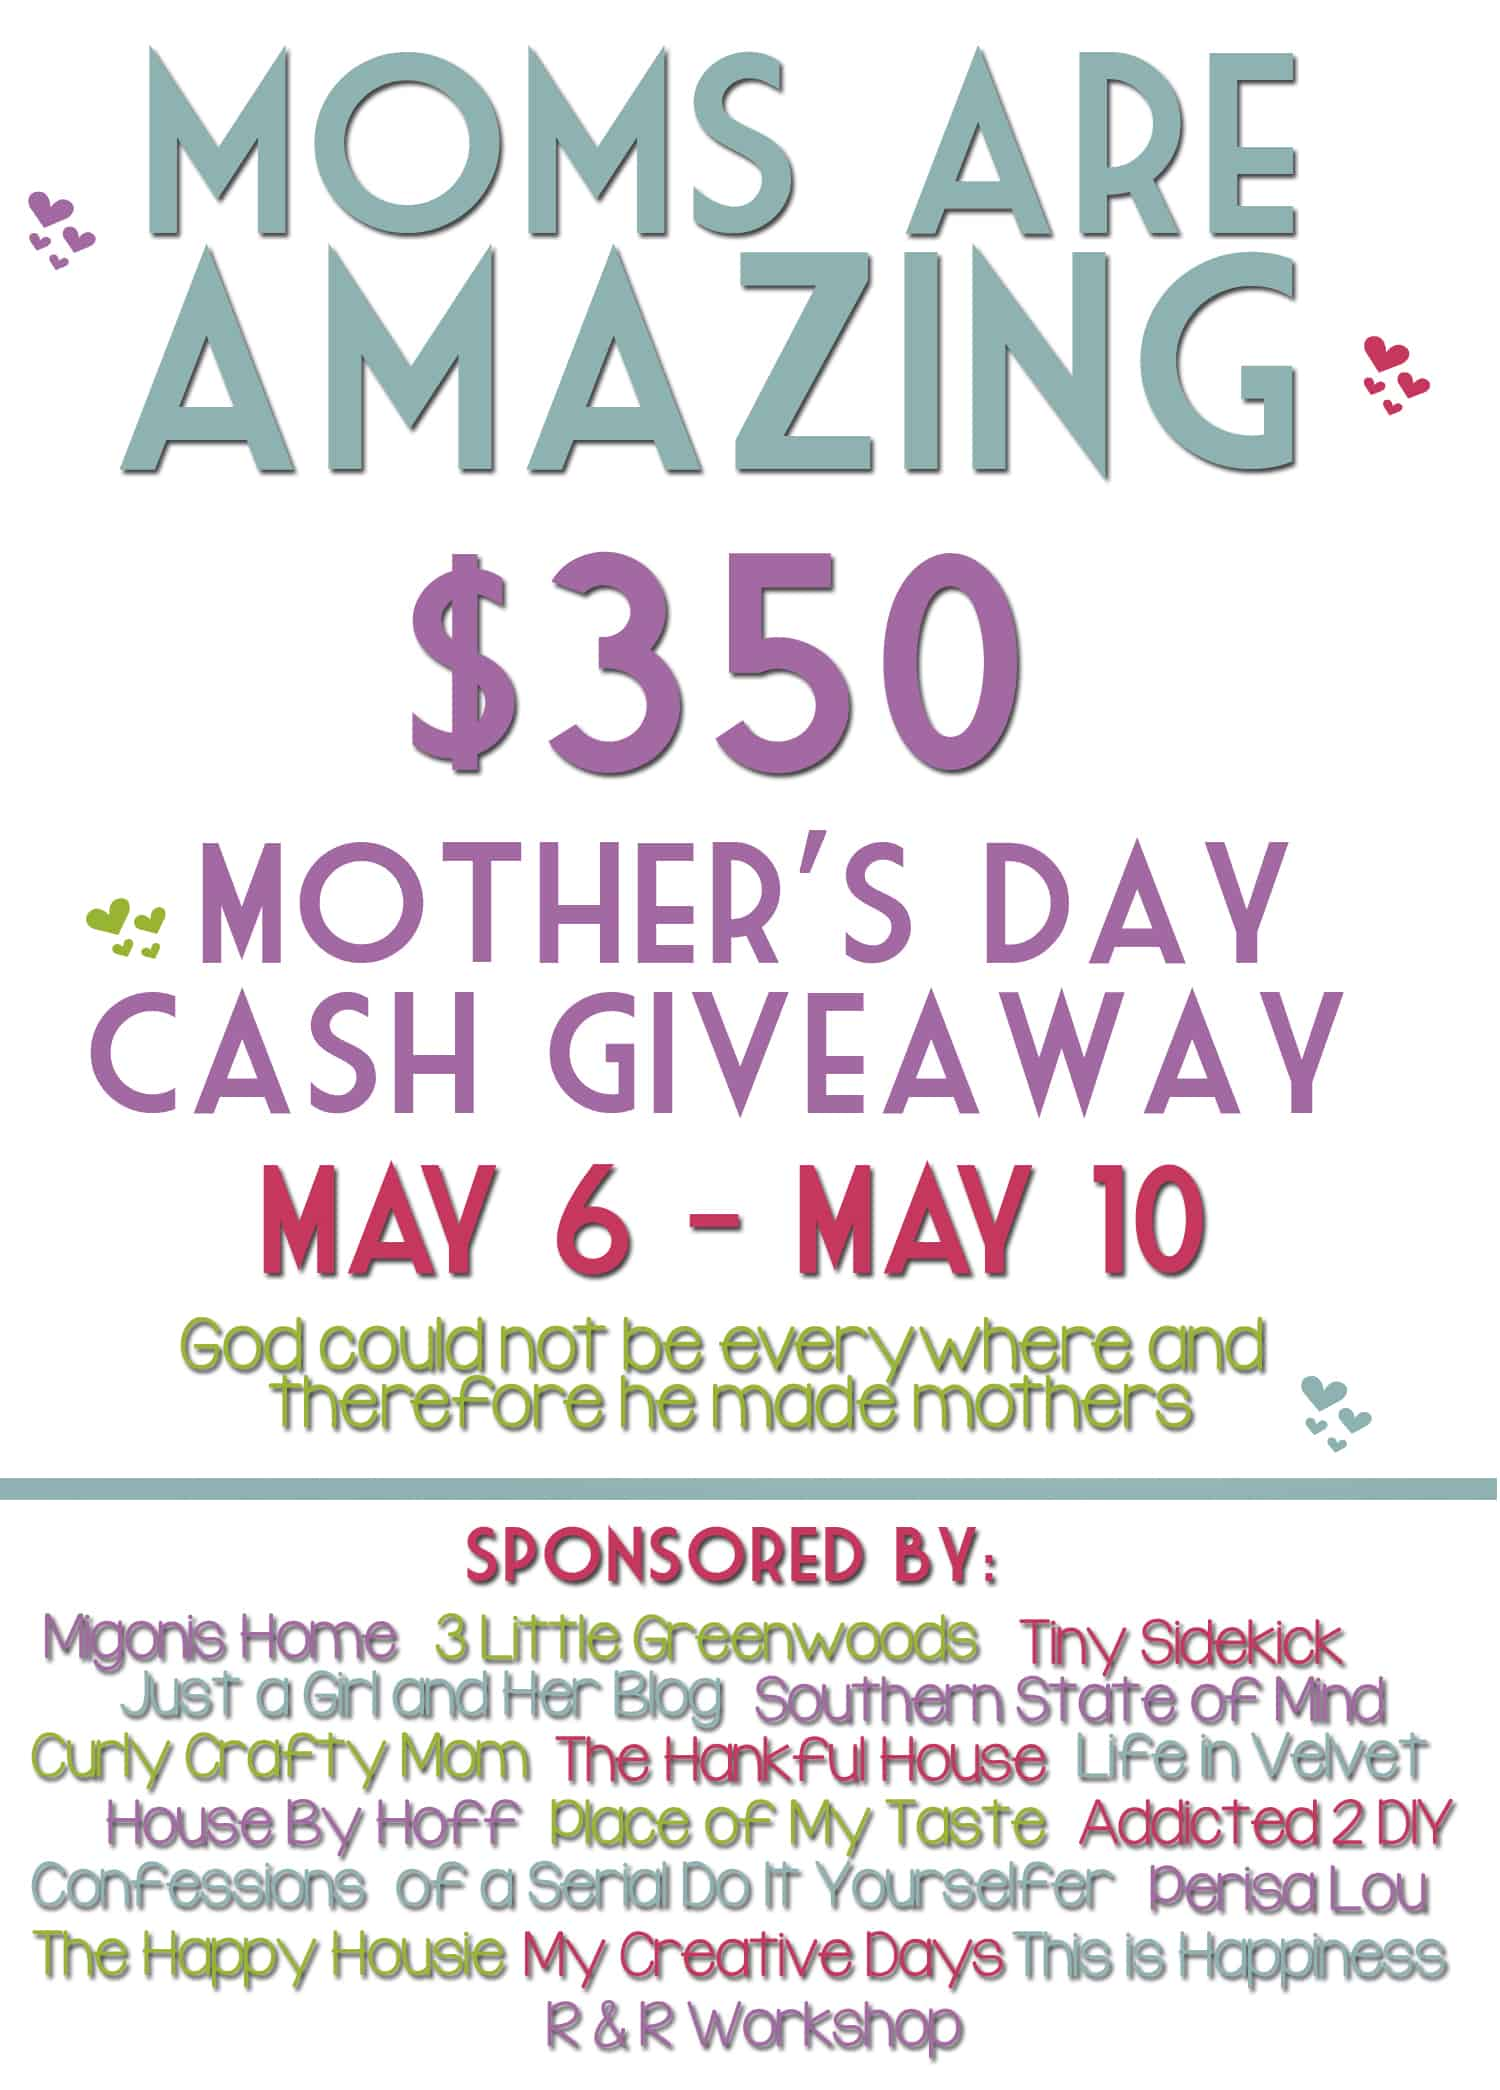 $350 MOTHER'S DAY GIVEAWAY